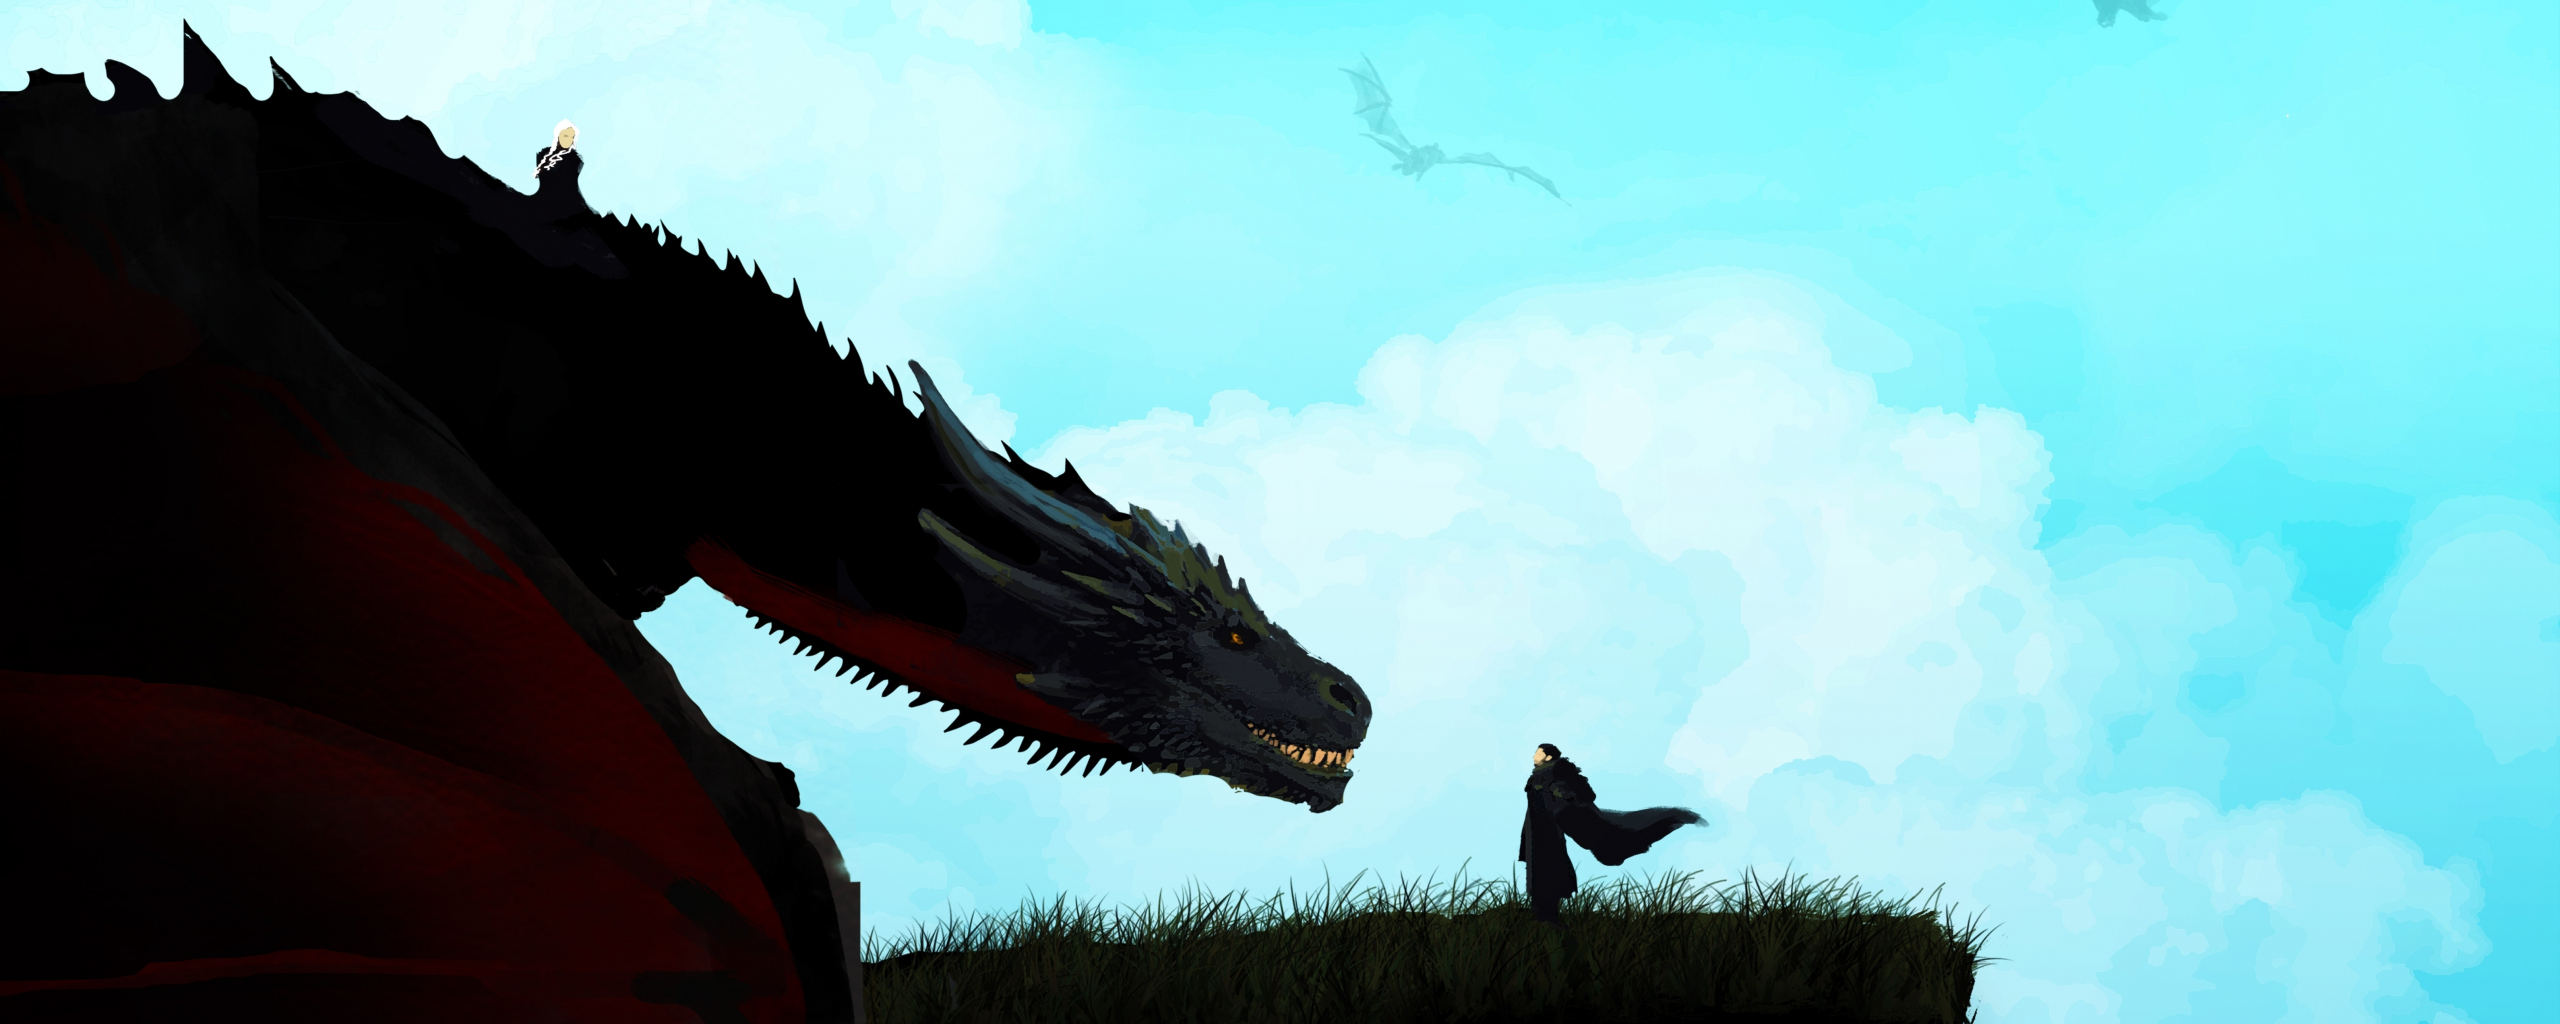 Download 2560x1024 Wallpaper Jon Snow And Dragon Game Of Thrones